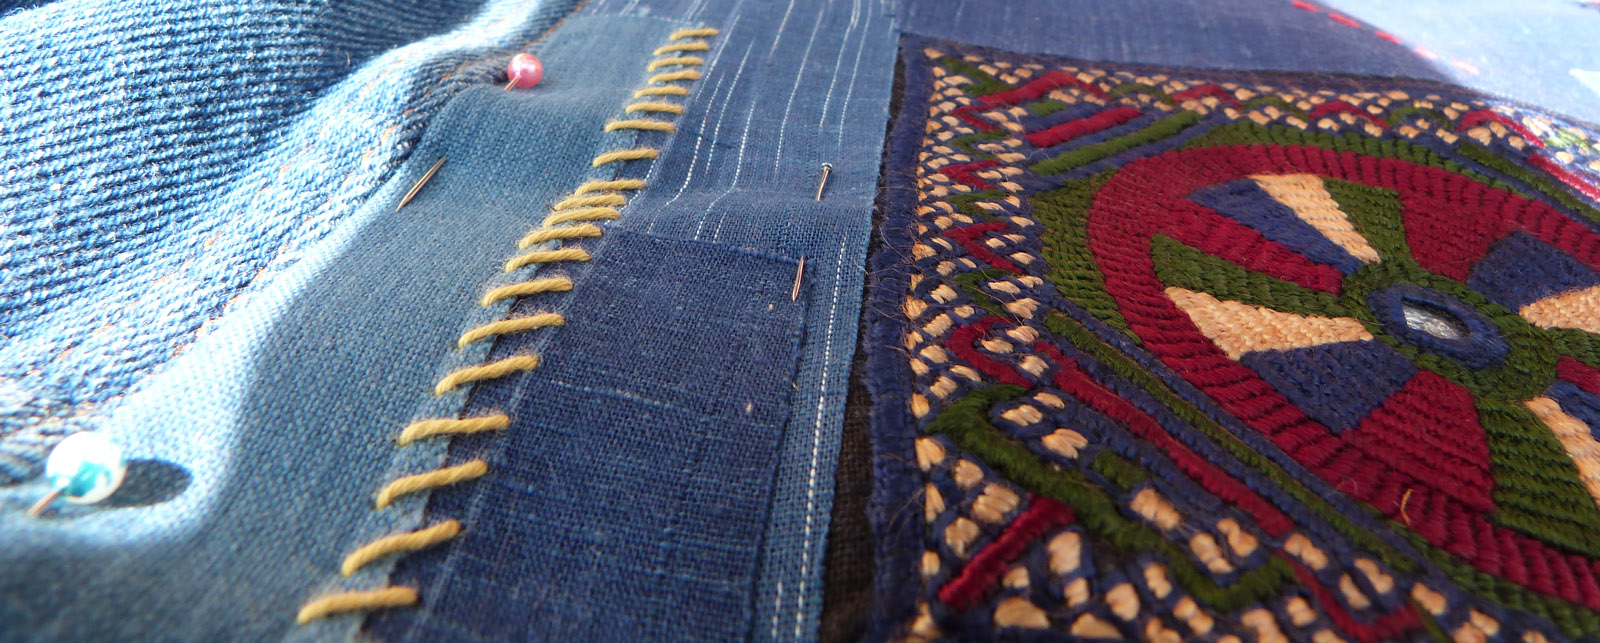 customisation de veste en jean